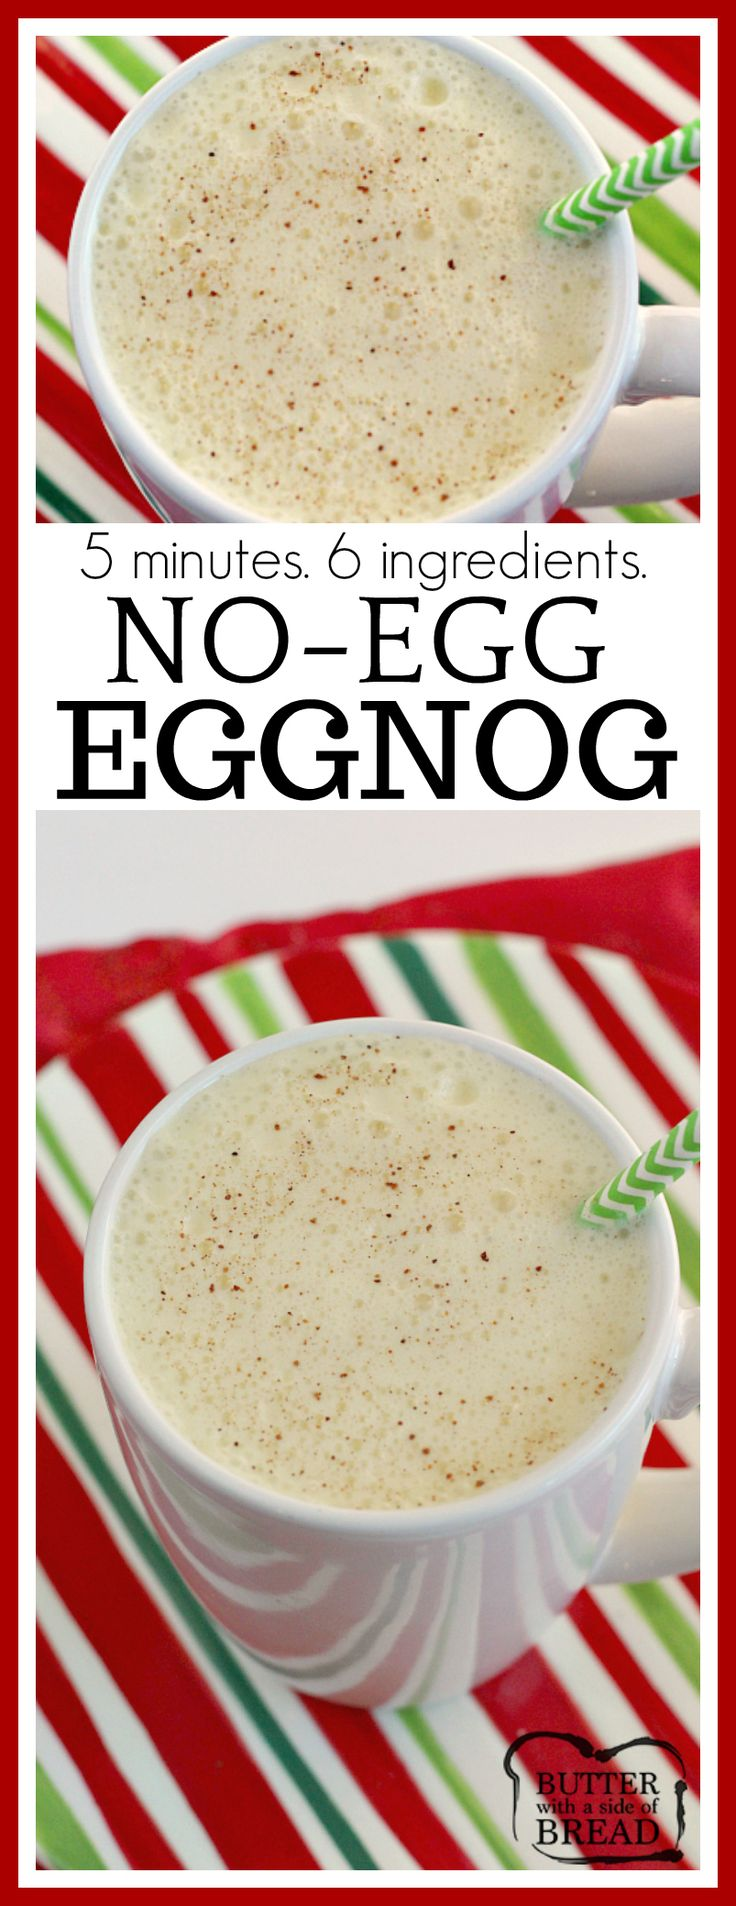 Easy No-Egg Eggnog can be made quickly in a blender with French vanilla pudding, milk, whipped cream and a few other basic ingredients!